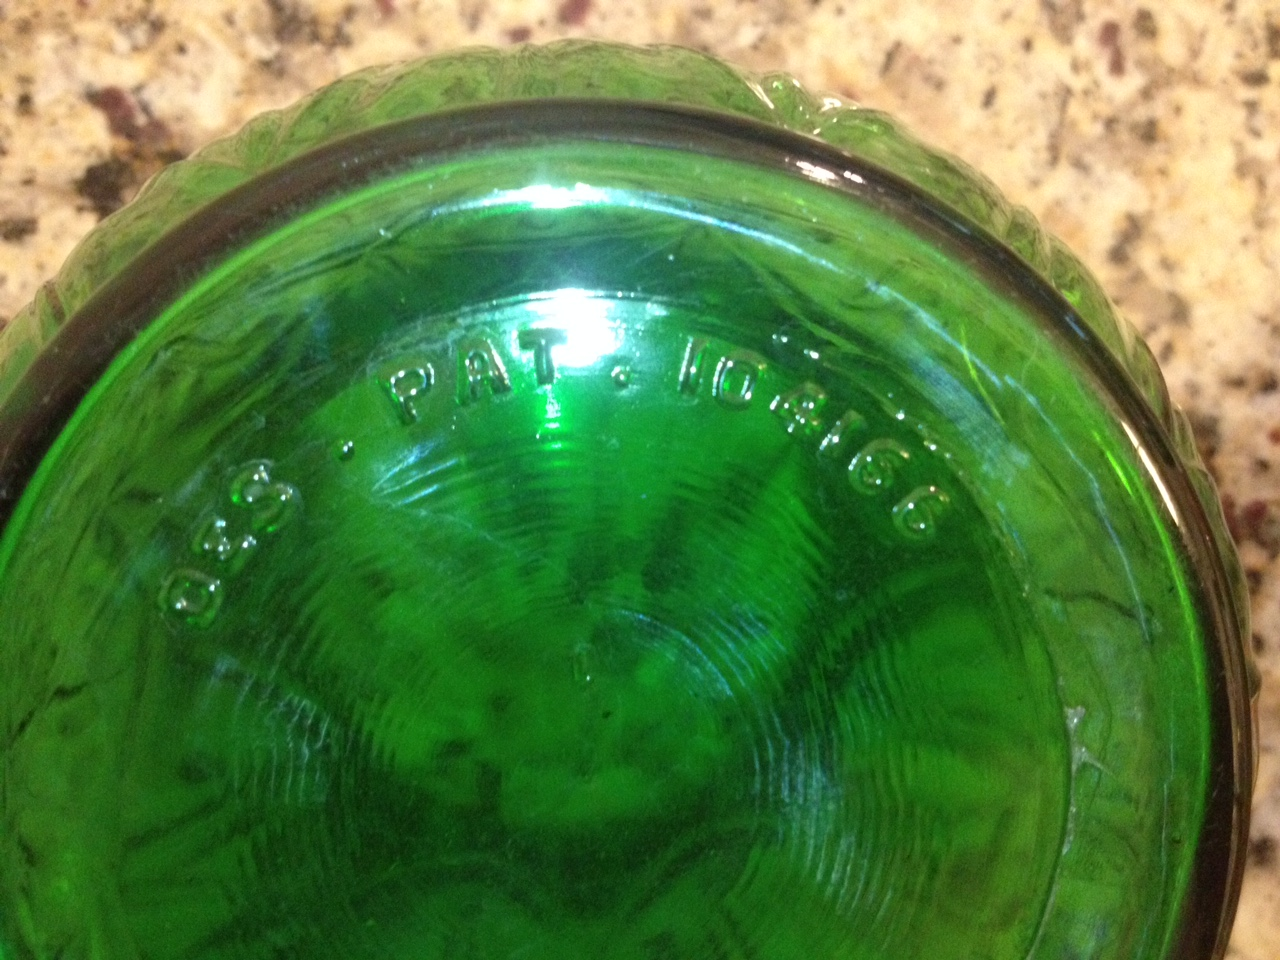 Antique pickin the green depression glass vase scrappymags look for a patent number or any type of number that can be researched reviewsmspy